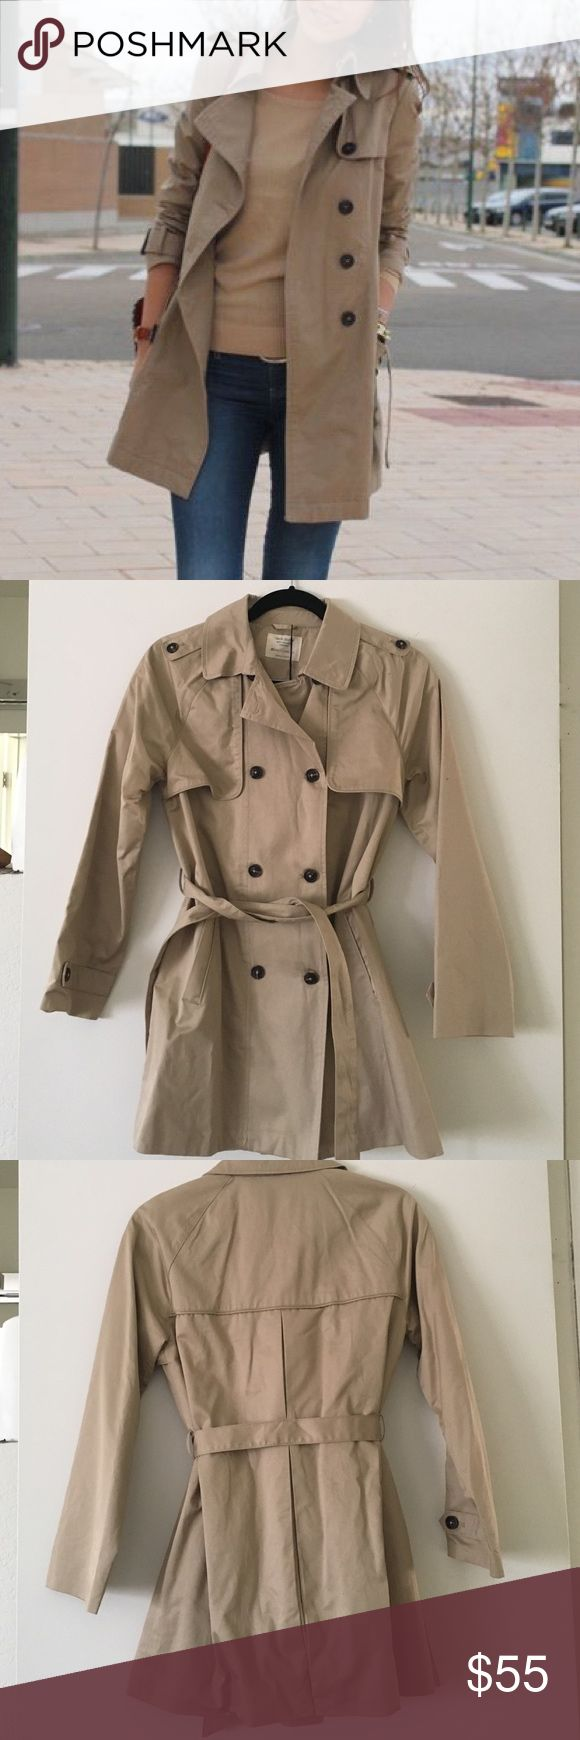 1000  ideas about Girls Trench Coat on Pinterest | Baby girl